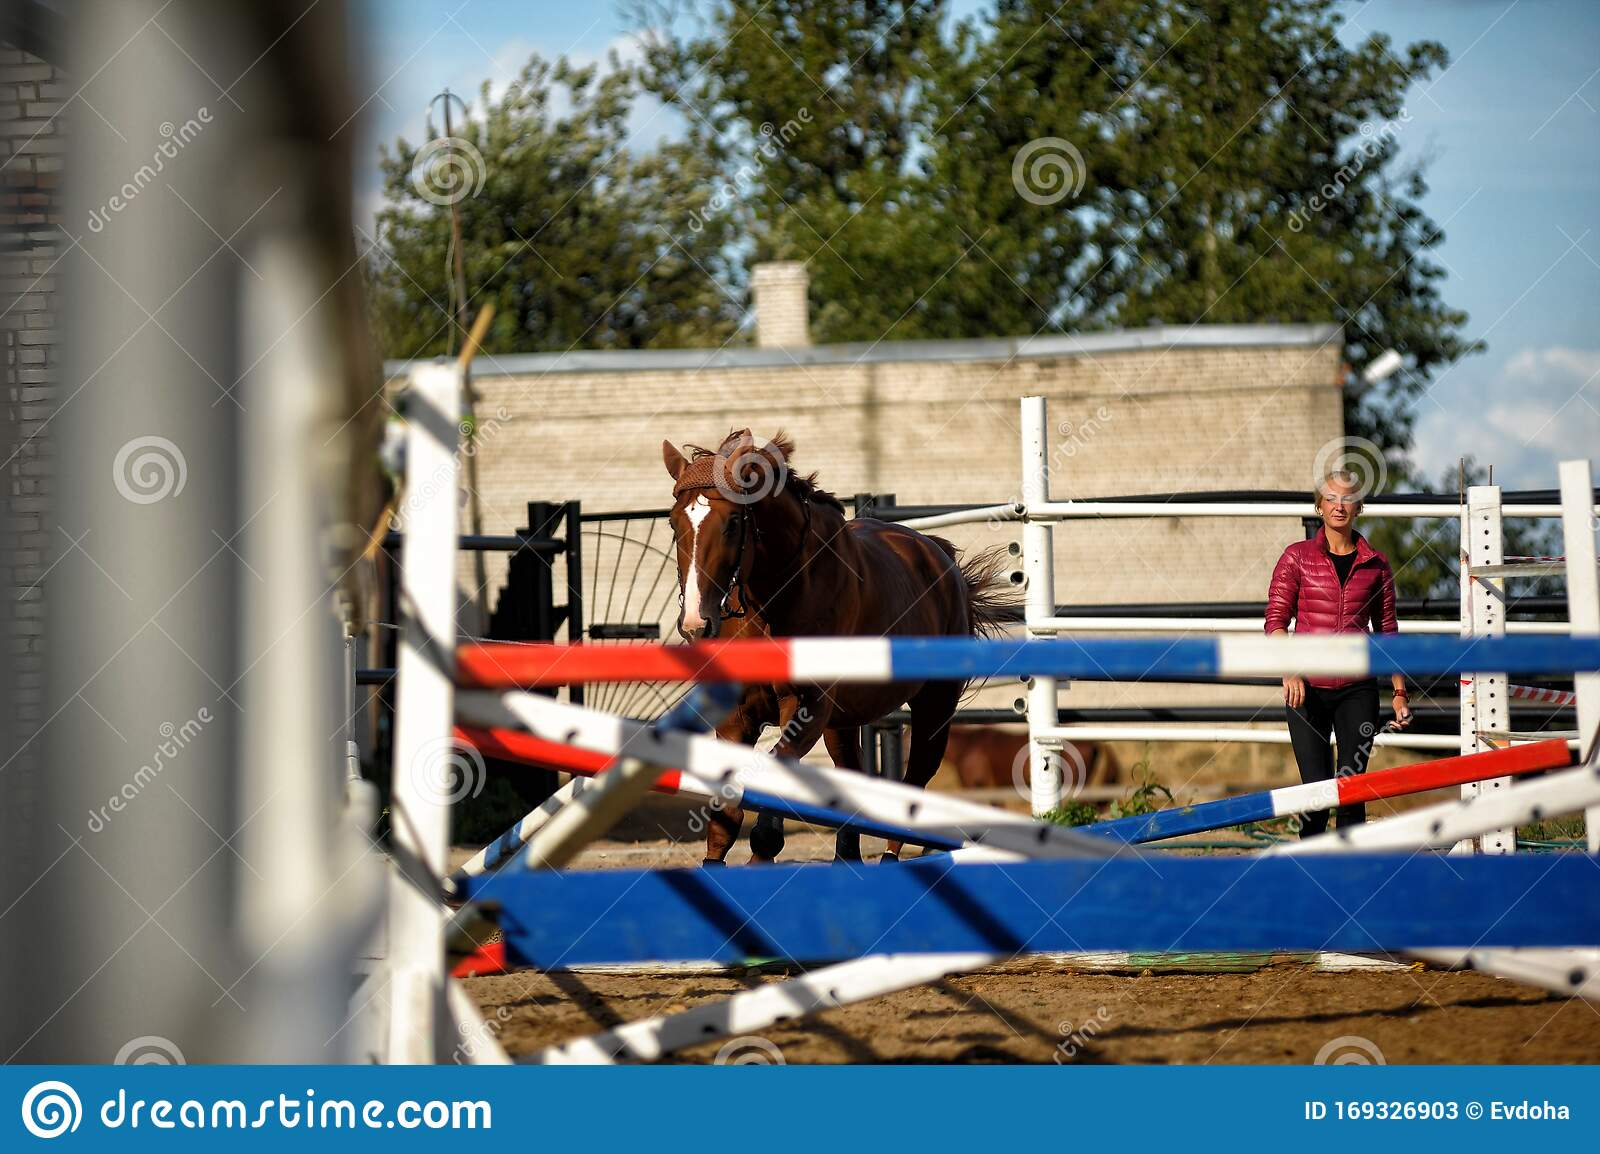 Brown Horse Jumps Over Obstacles In Training Editorial Stock Photo Image Of Event Habitat 169326903